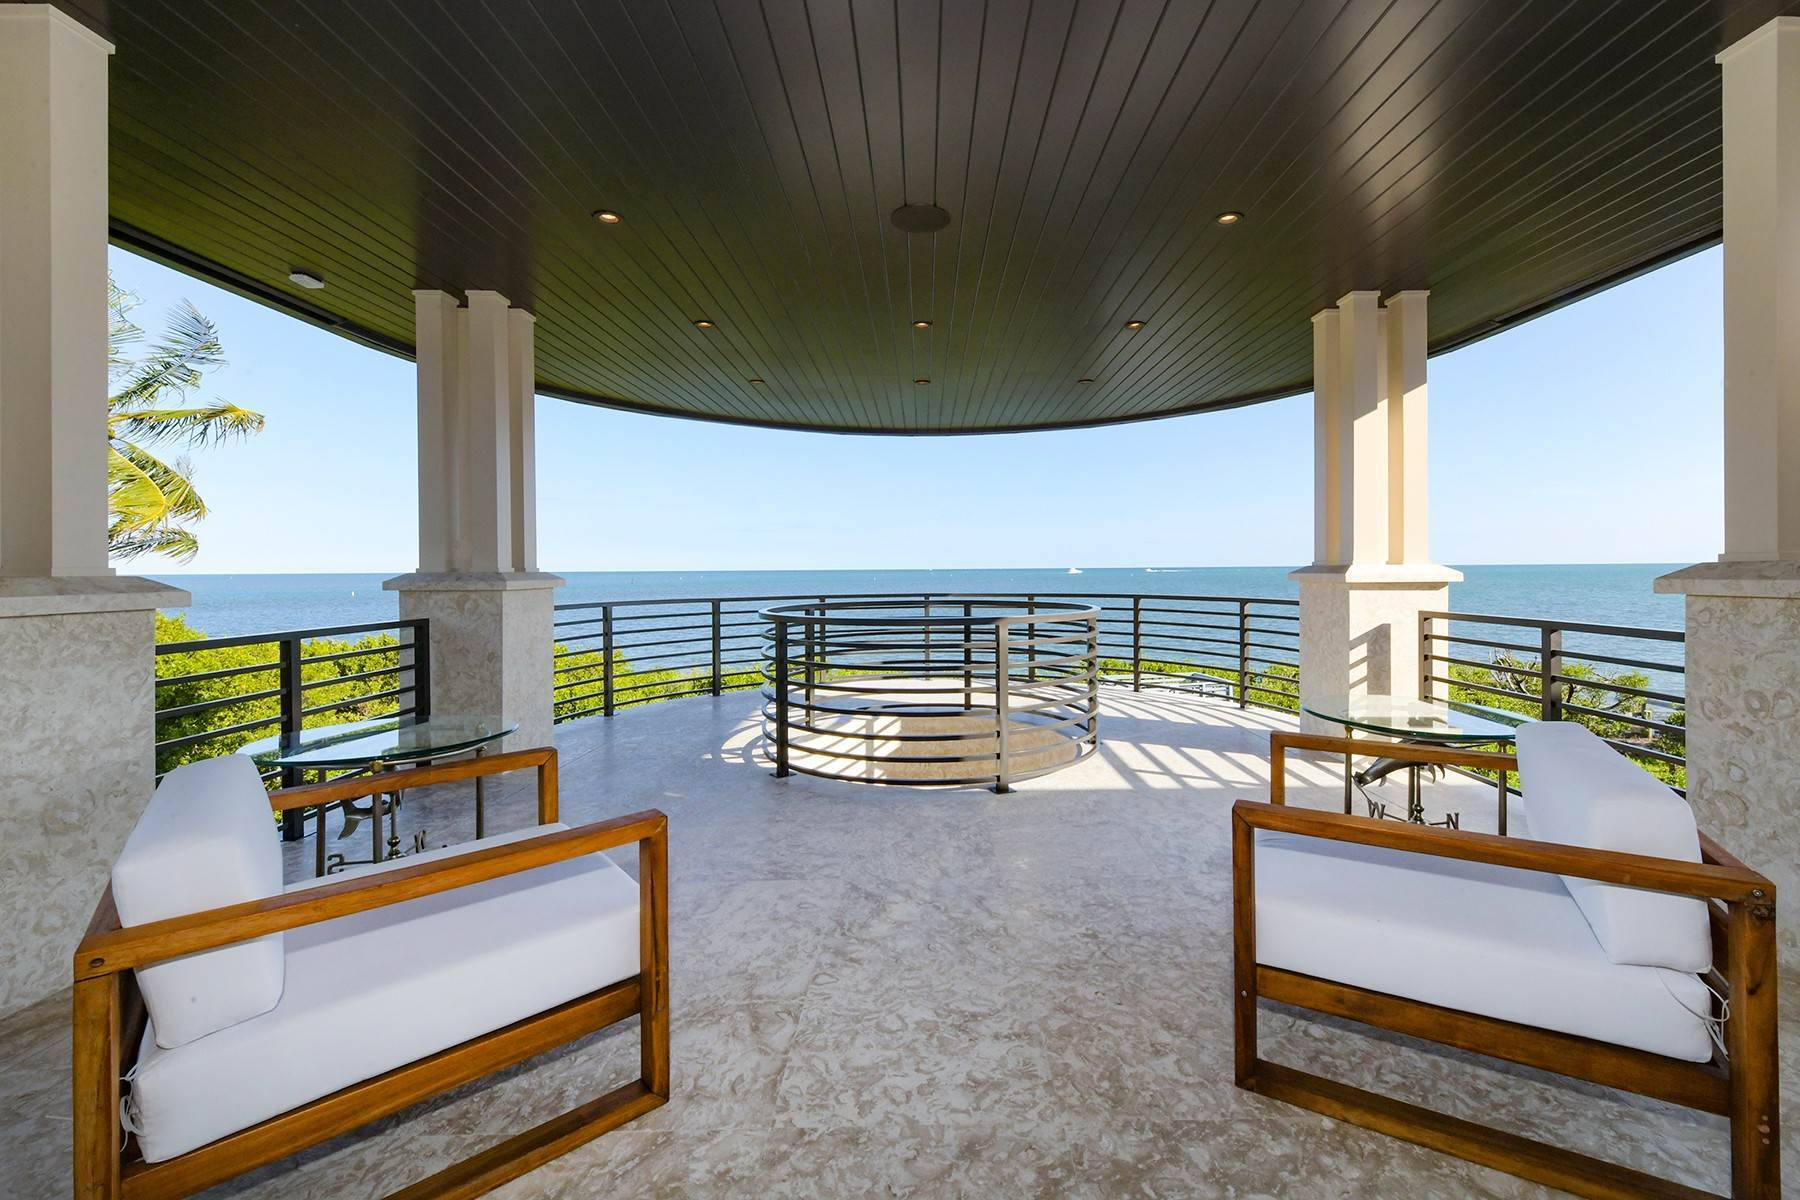 Single Family Homes for Sale at 6 Sunrise Cay Drive, Key Largo, FL 6 Sunrise Cay Drive Key Largo, Florida 33037 United States